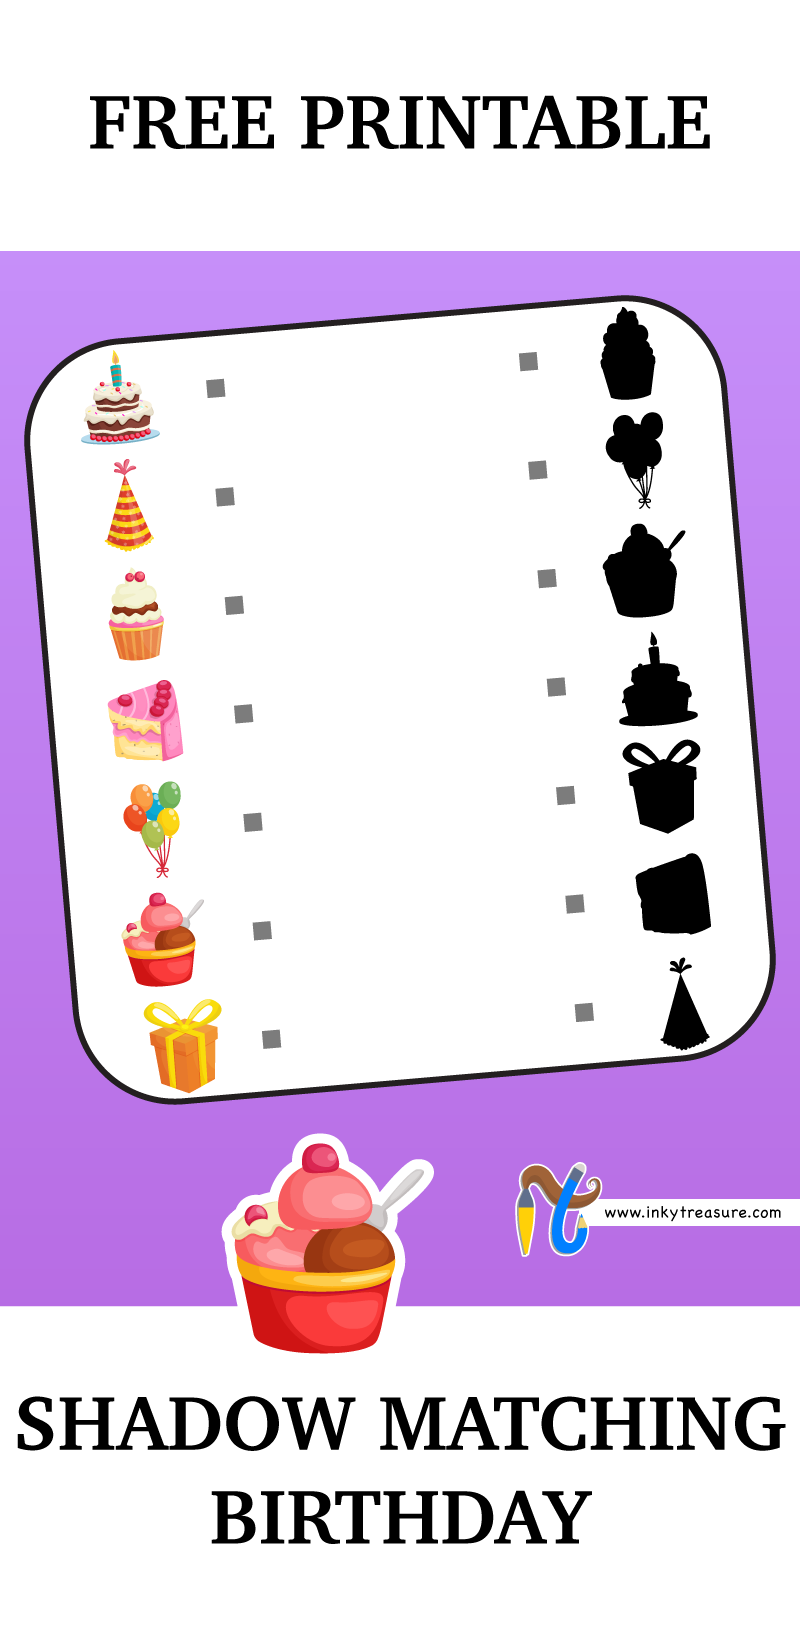 Use Pencil To Join The Birthday Colored Shapes To Match Birthday Black Shapes And Let Your Child Deci Free Printable Puzzles Matching Skills Printable Puzzles [ 1640 x 800 Pixel ]